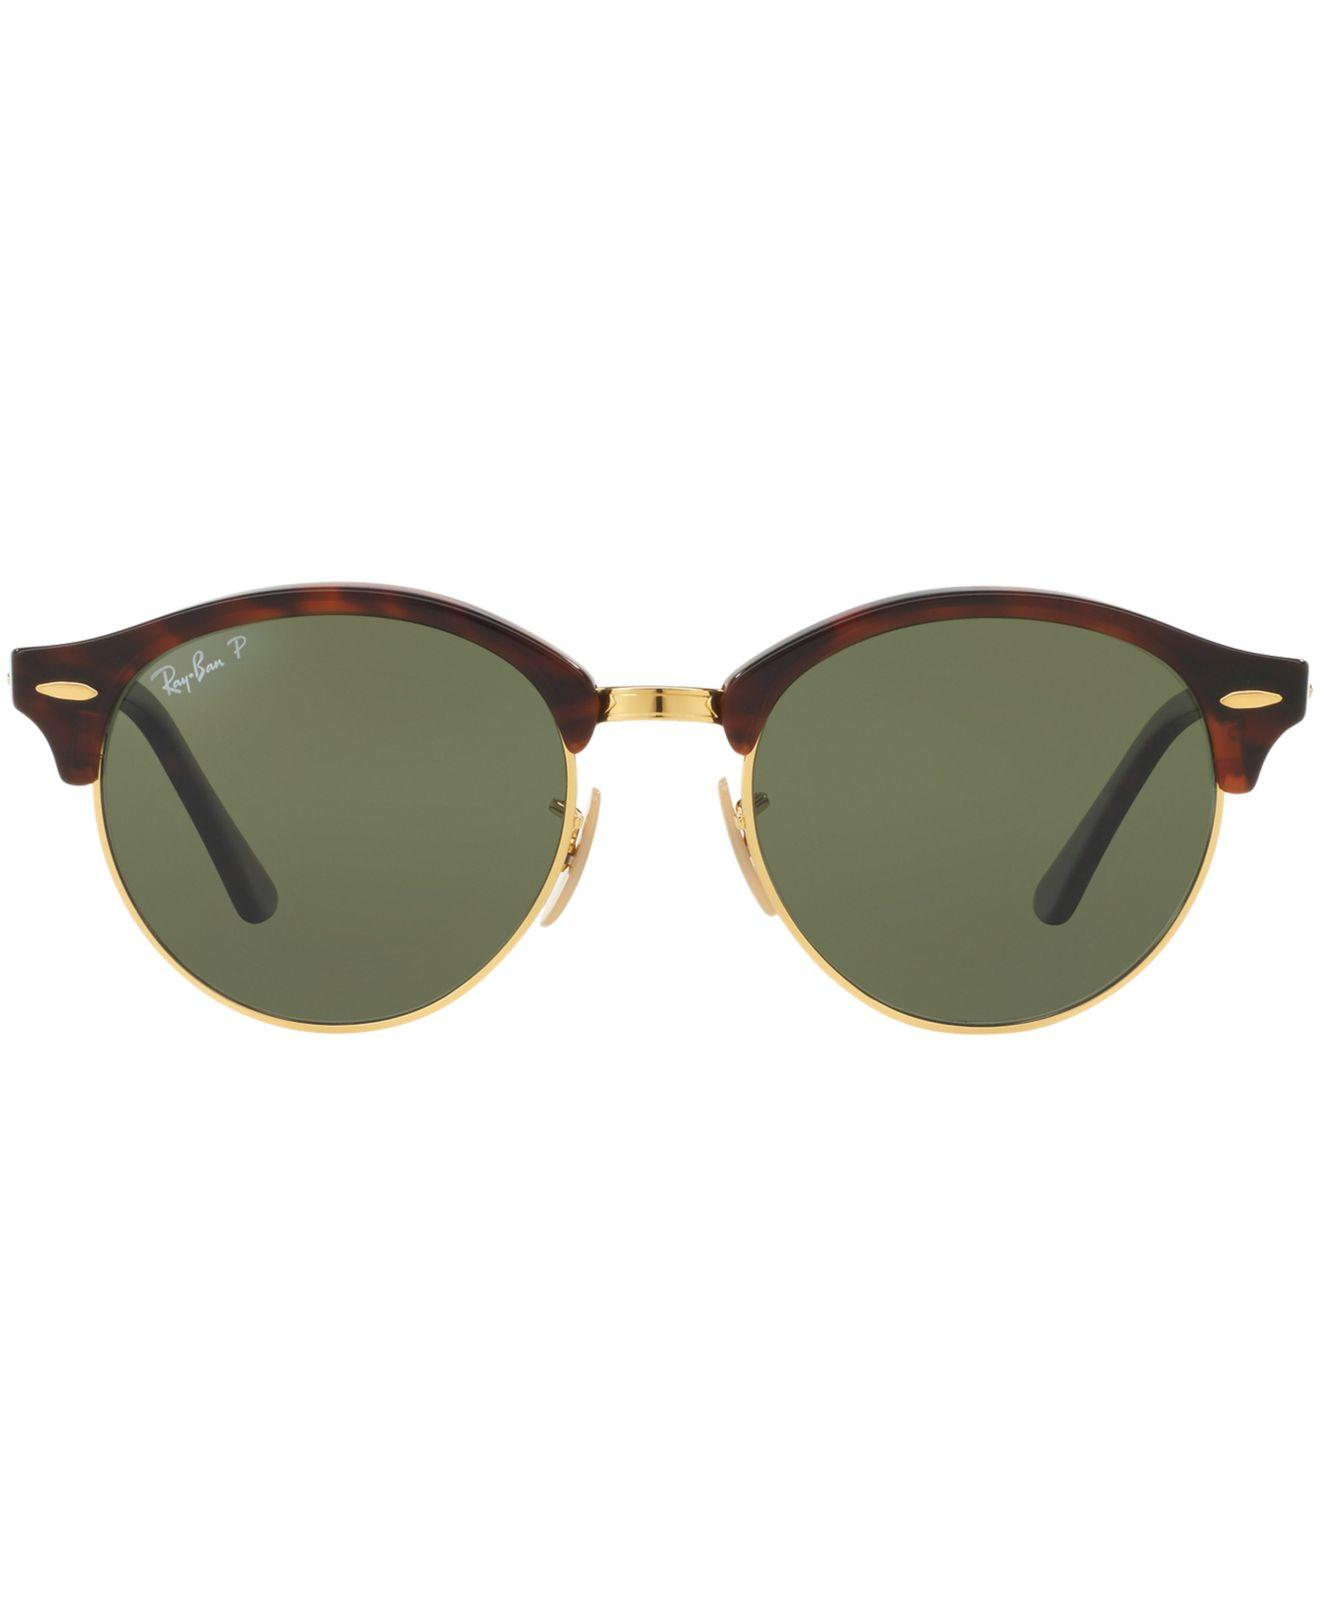 4c4a69cf04 Lyst - Ray-Ban Rb4246 Clubround in Metallic